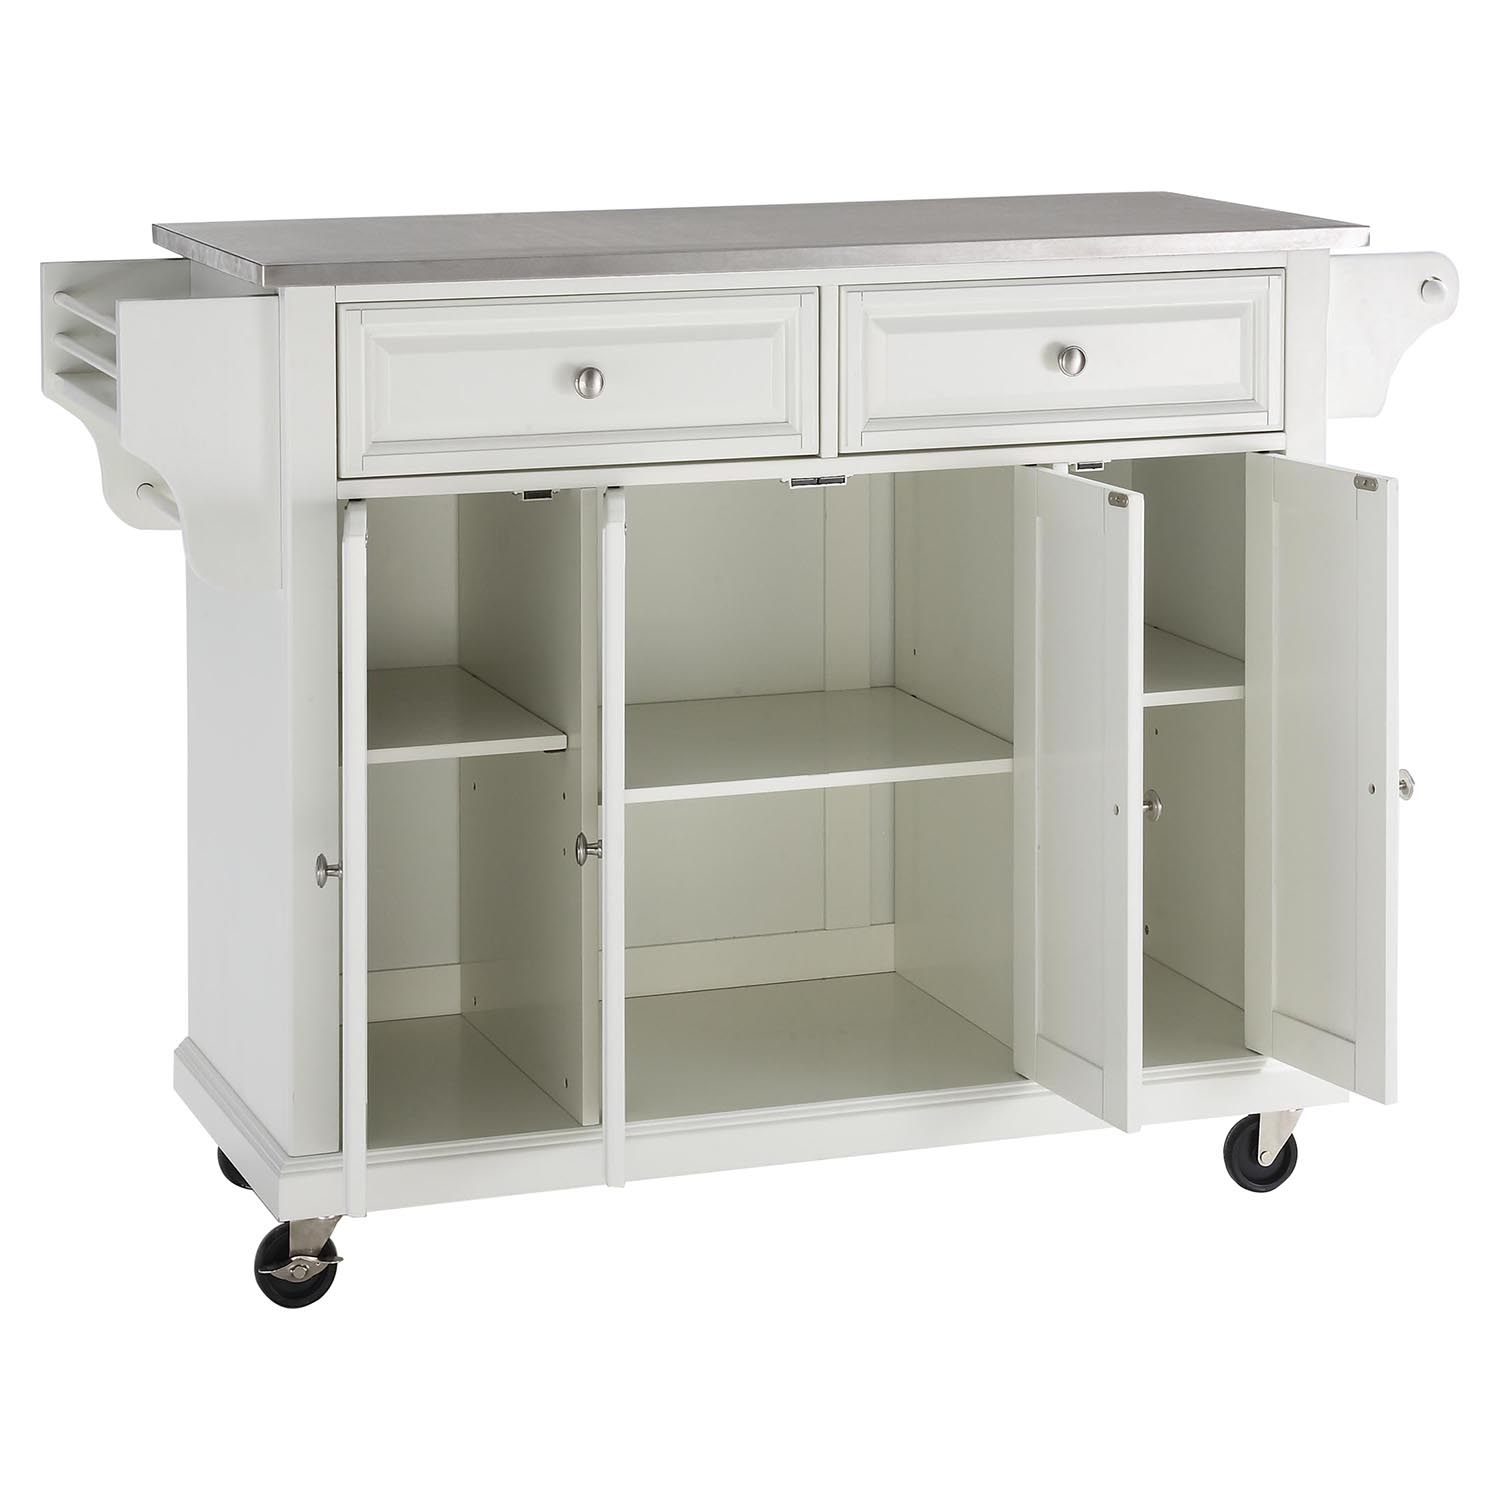 Stainless Steel Top Kitchen Cart Island  Casters, White  DCG Stores